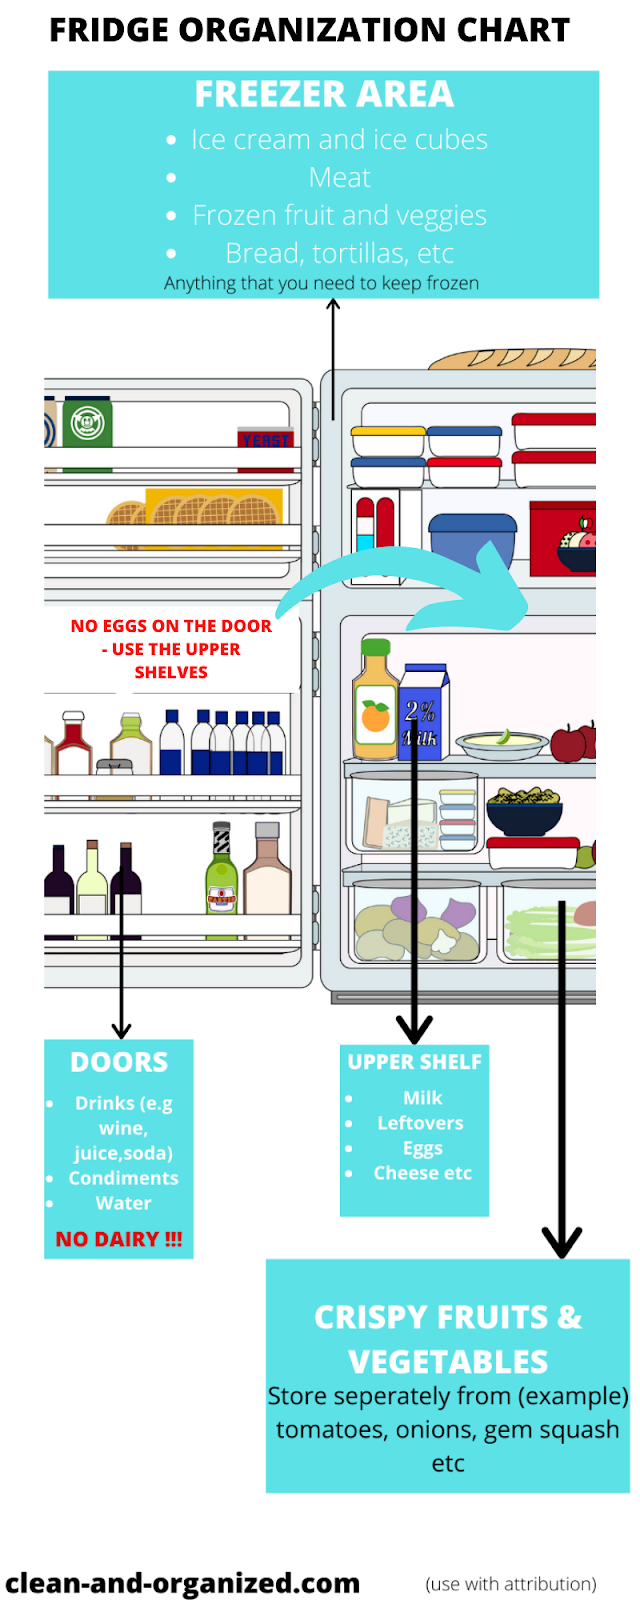 This basic refrigerator chart simplifies your fridge organization, helping you keep it organized, and the food fresher for longer.